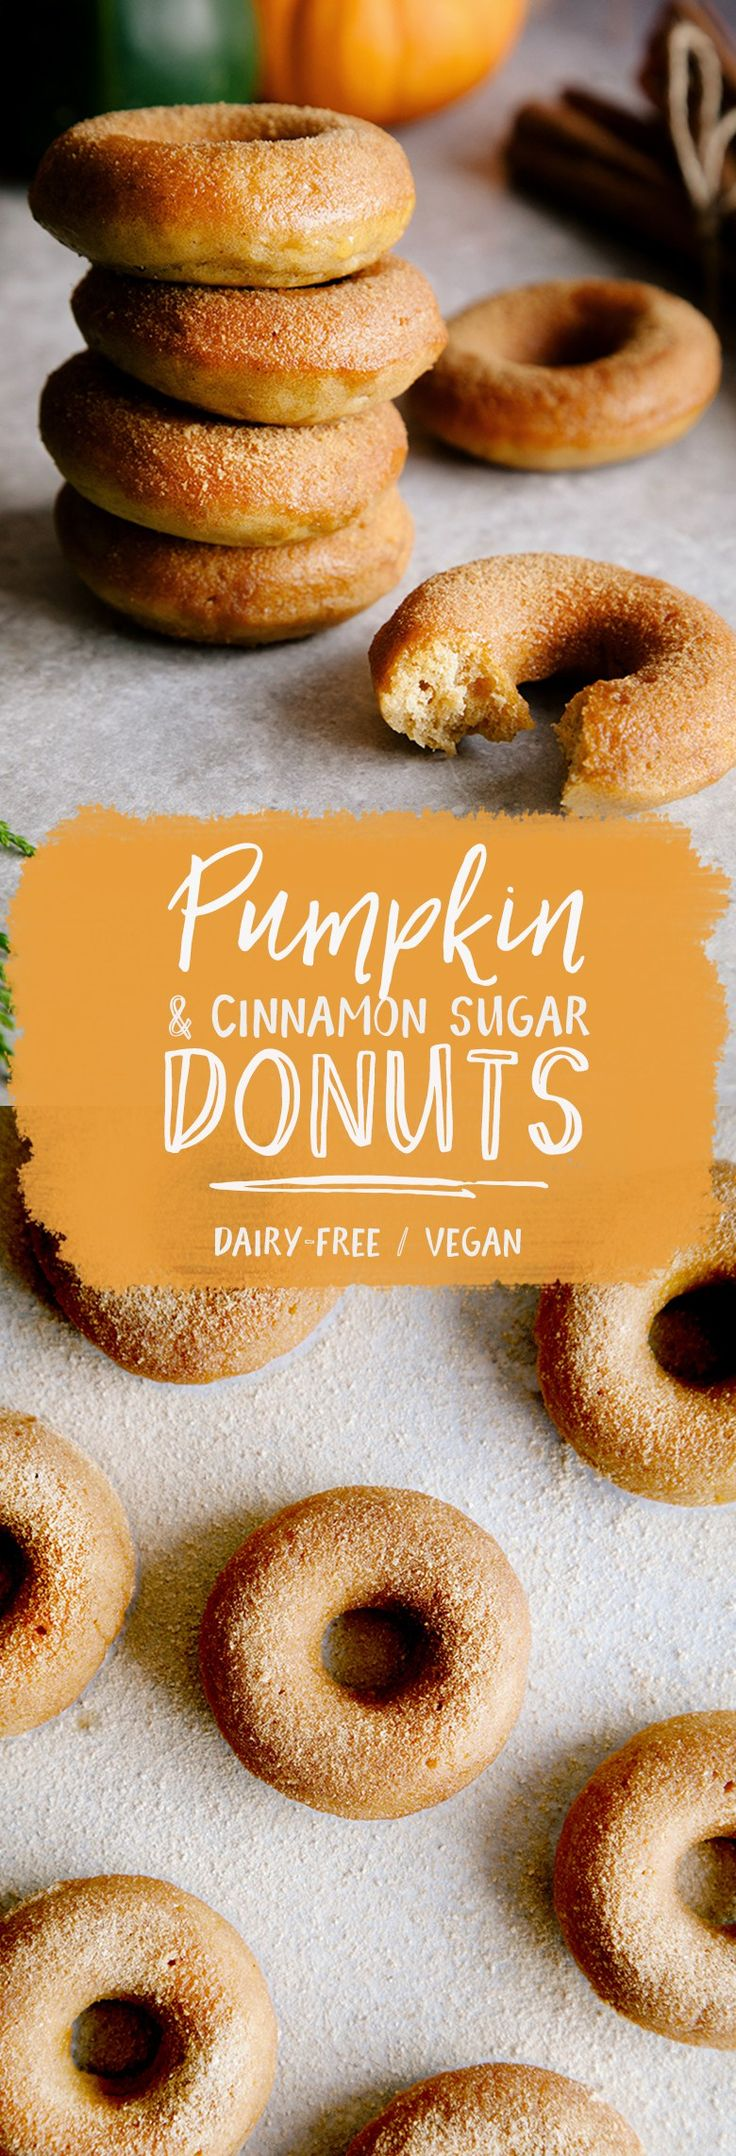 "Mini Pumpkin & Cinnamon Sugar Donuts //20% OFF Sale! Use coupon ""Pinterest20"" at getcutea.com to order CUTEA Herbal Teas!"